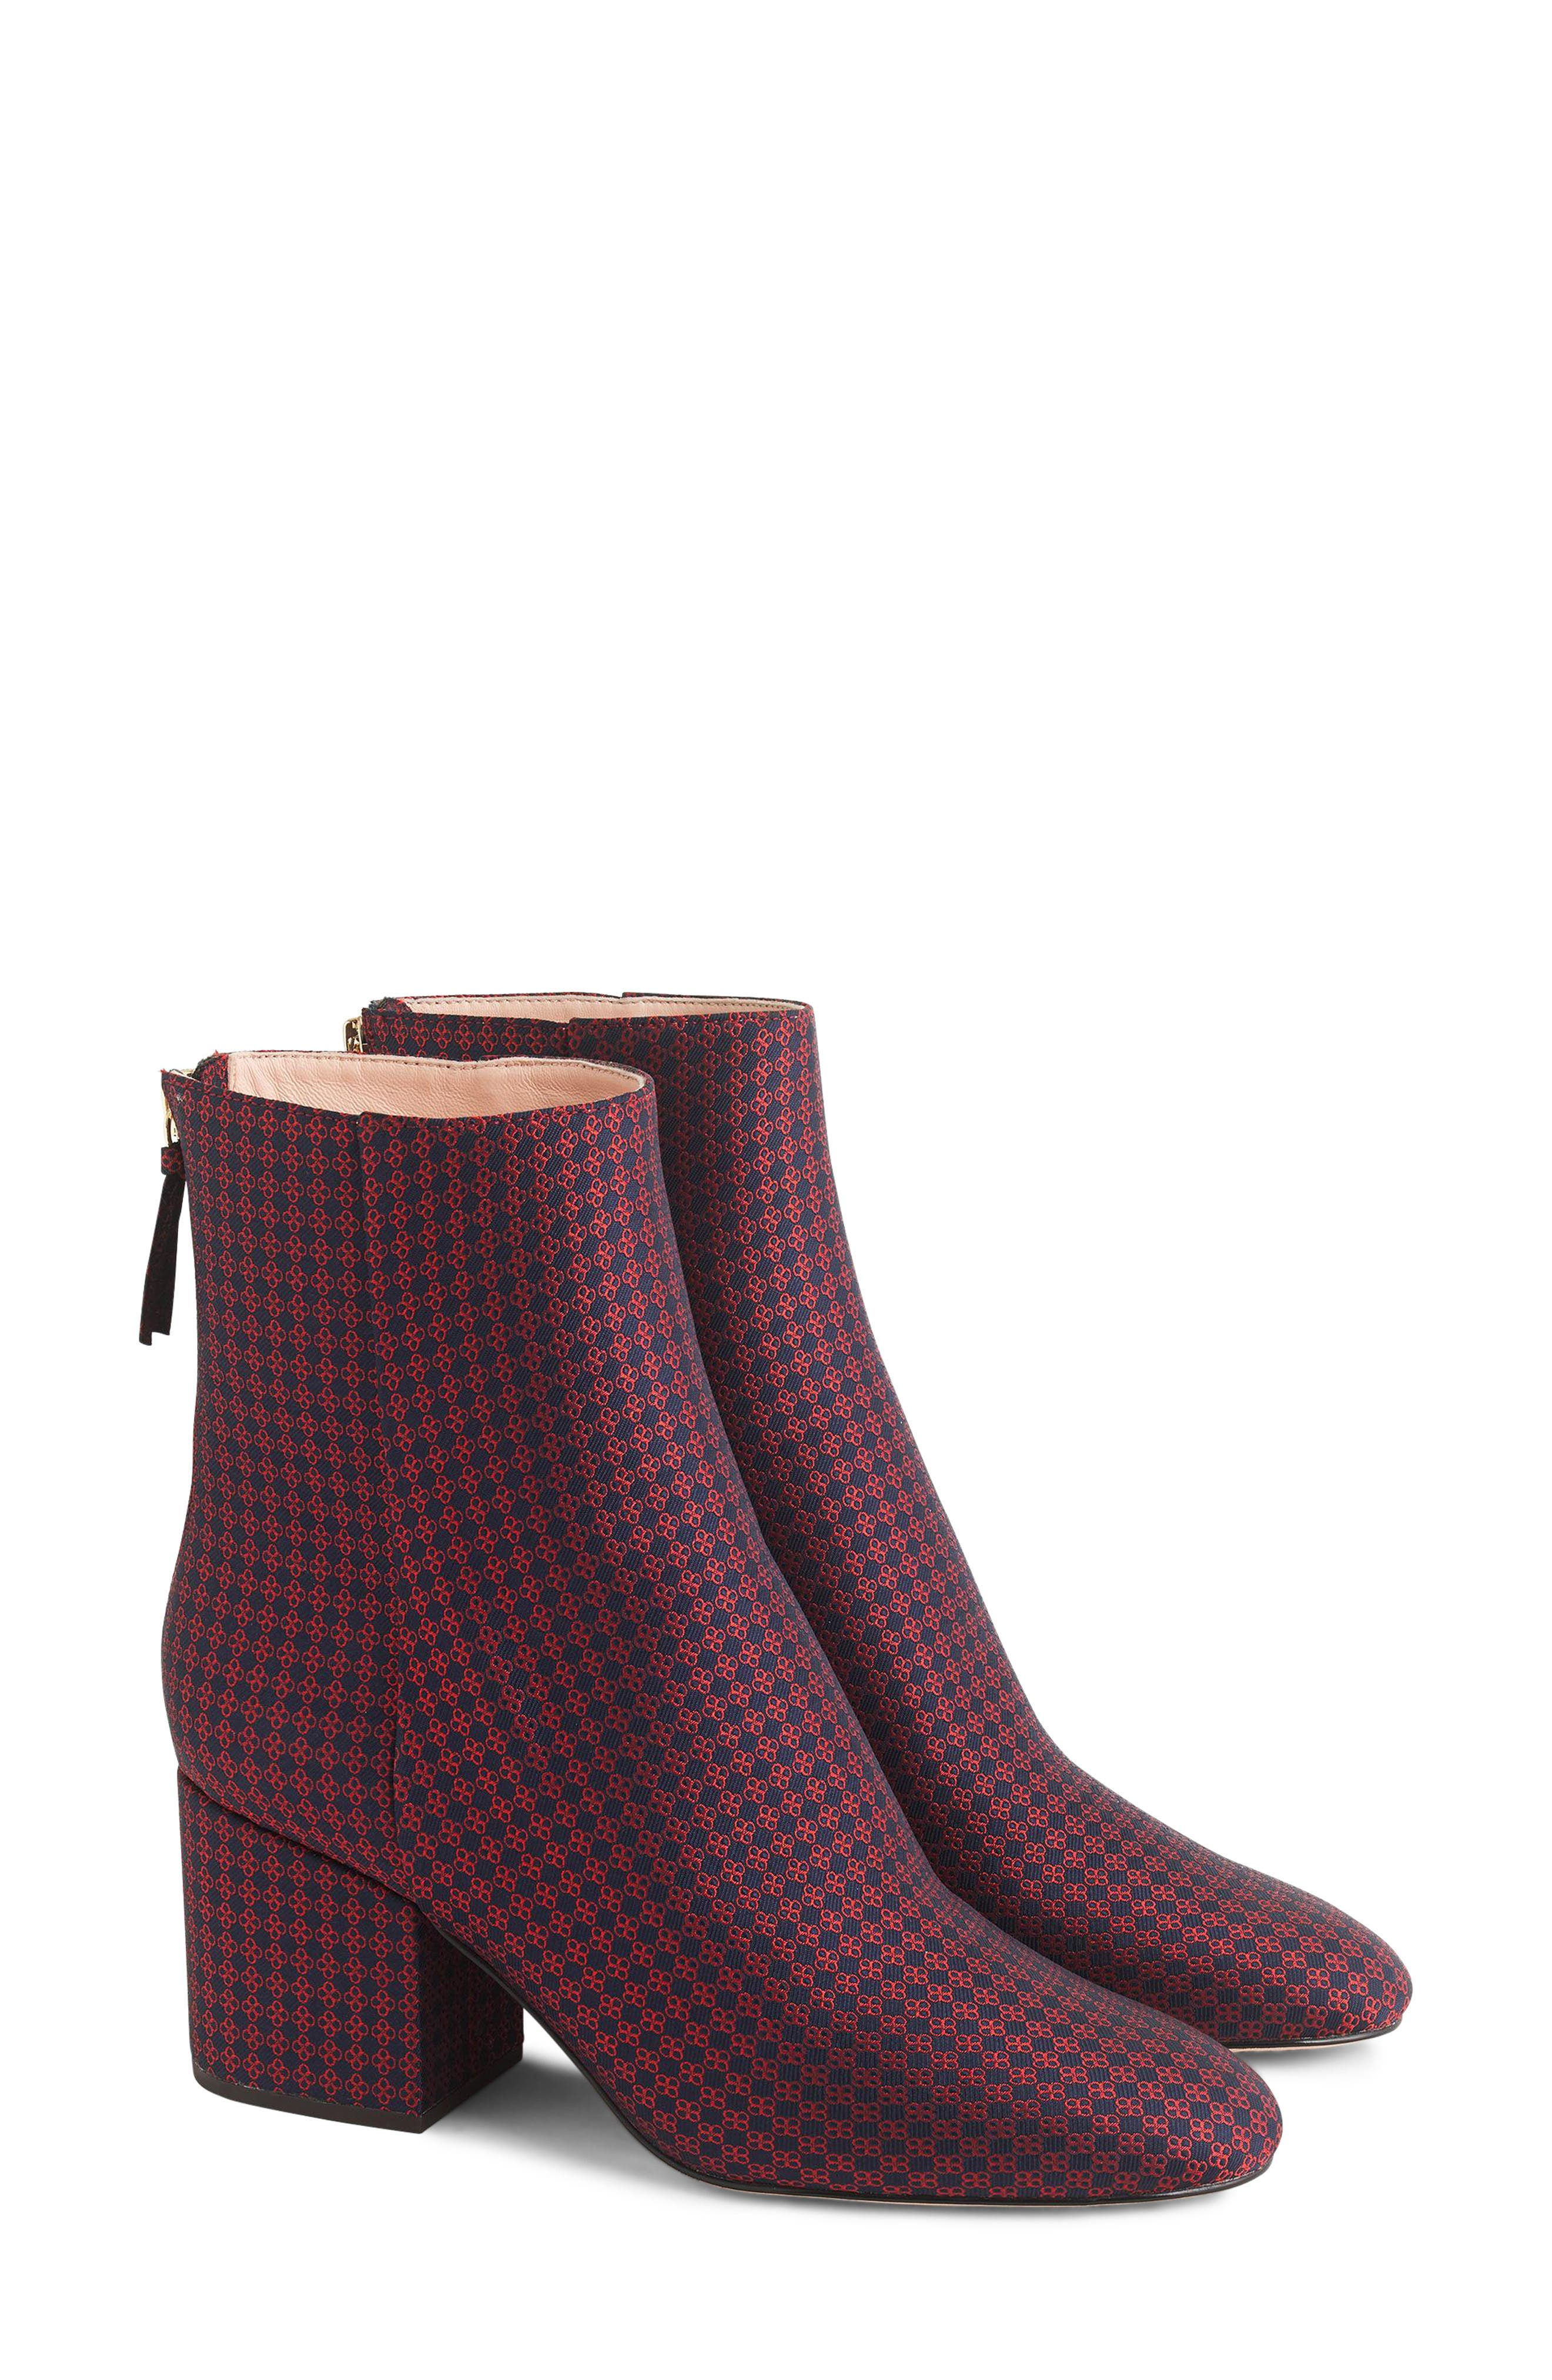 Maya Ankle Bootie,                         Main,                         color, NAVY/ RED PLAID